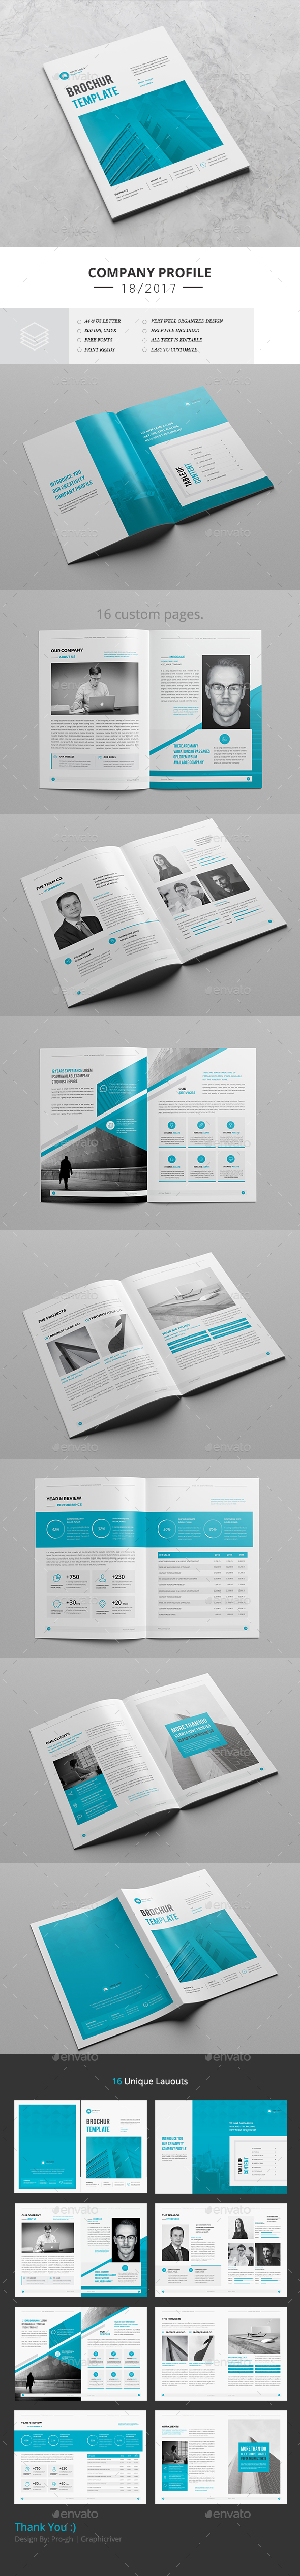 Brochure Template InDesign INDD - 16 Pages | Brochure Templates ...